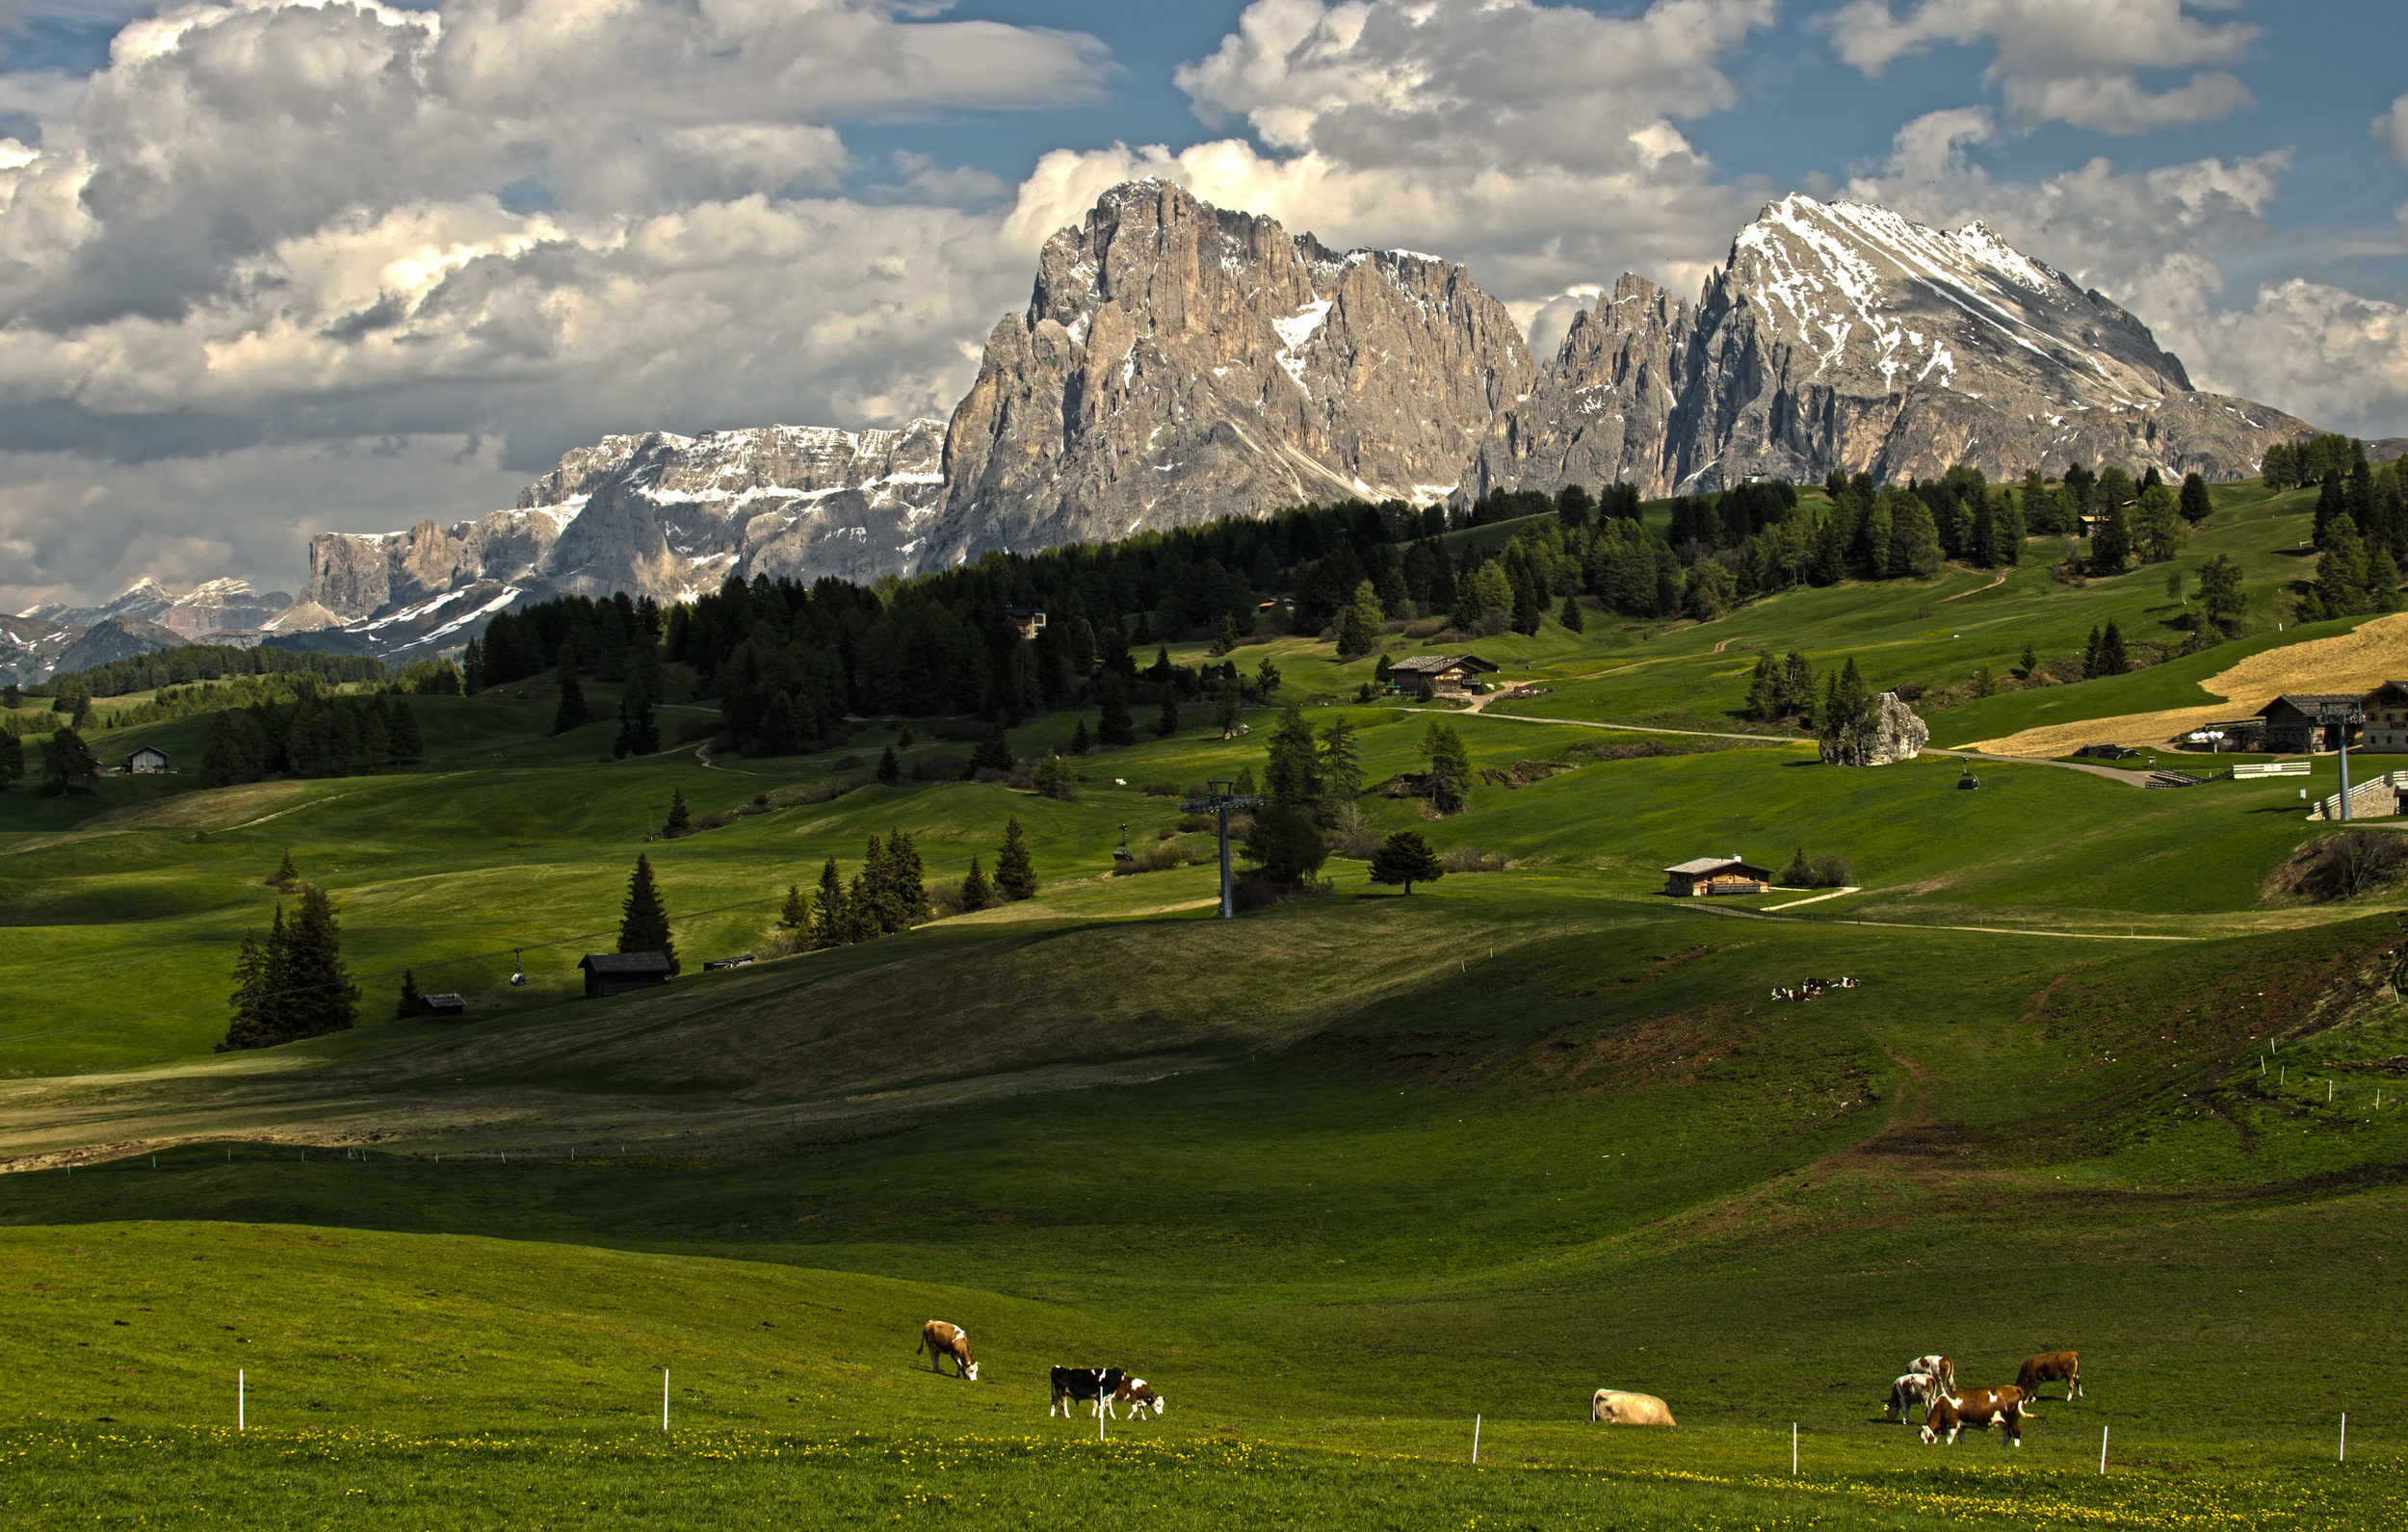 The Alps_HDR2.jpg